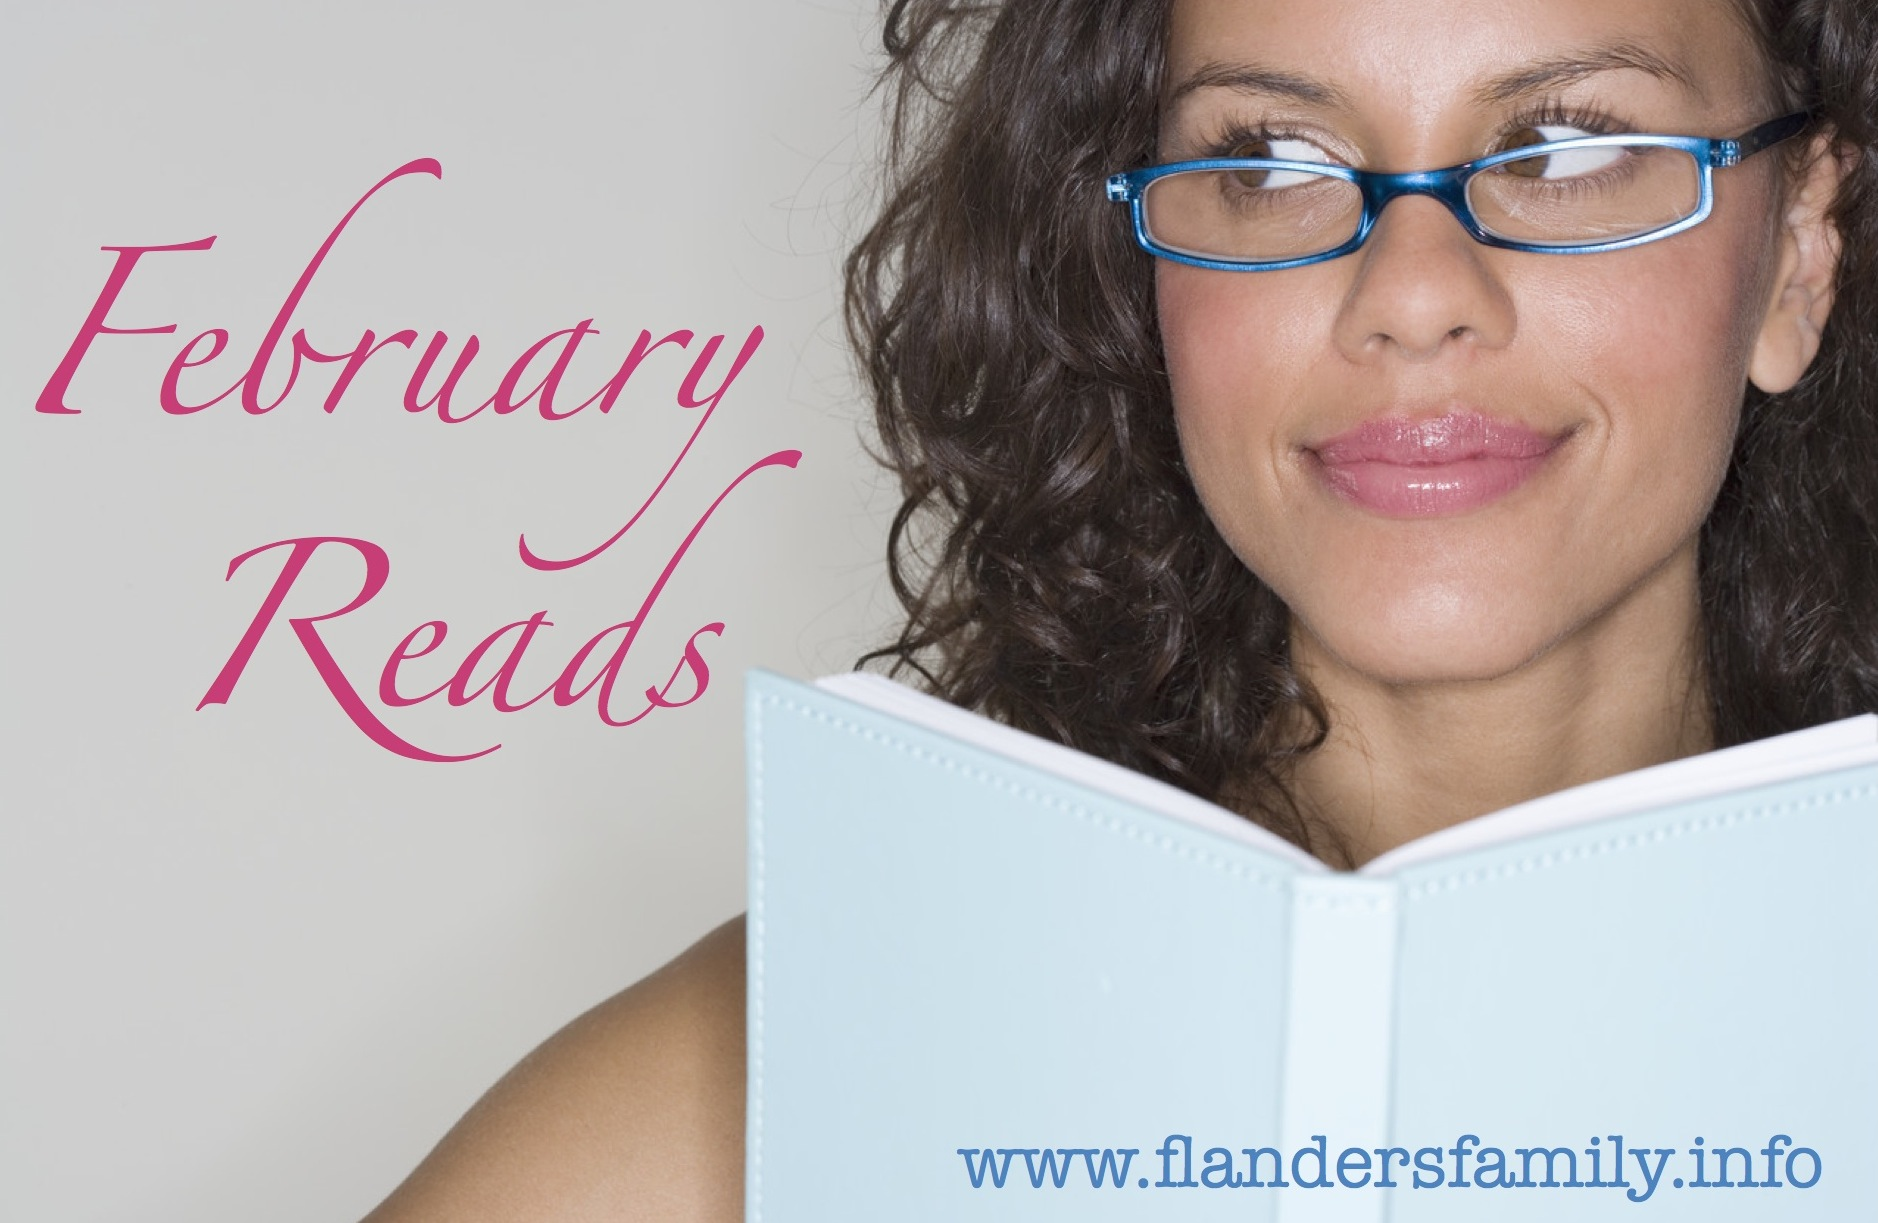 The Flipside of Feminism (& More Feb. Reads)